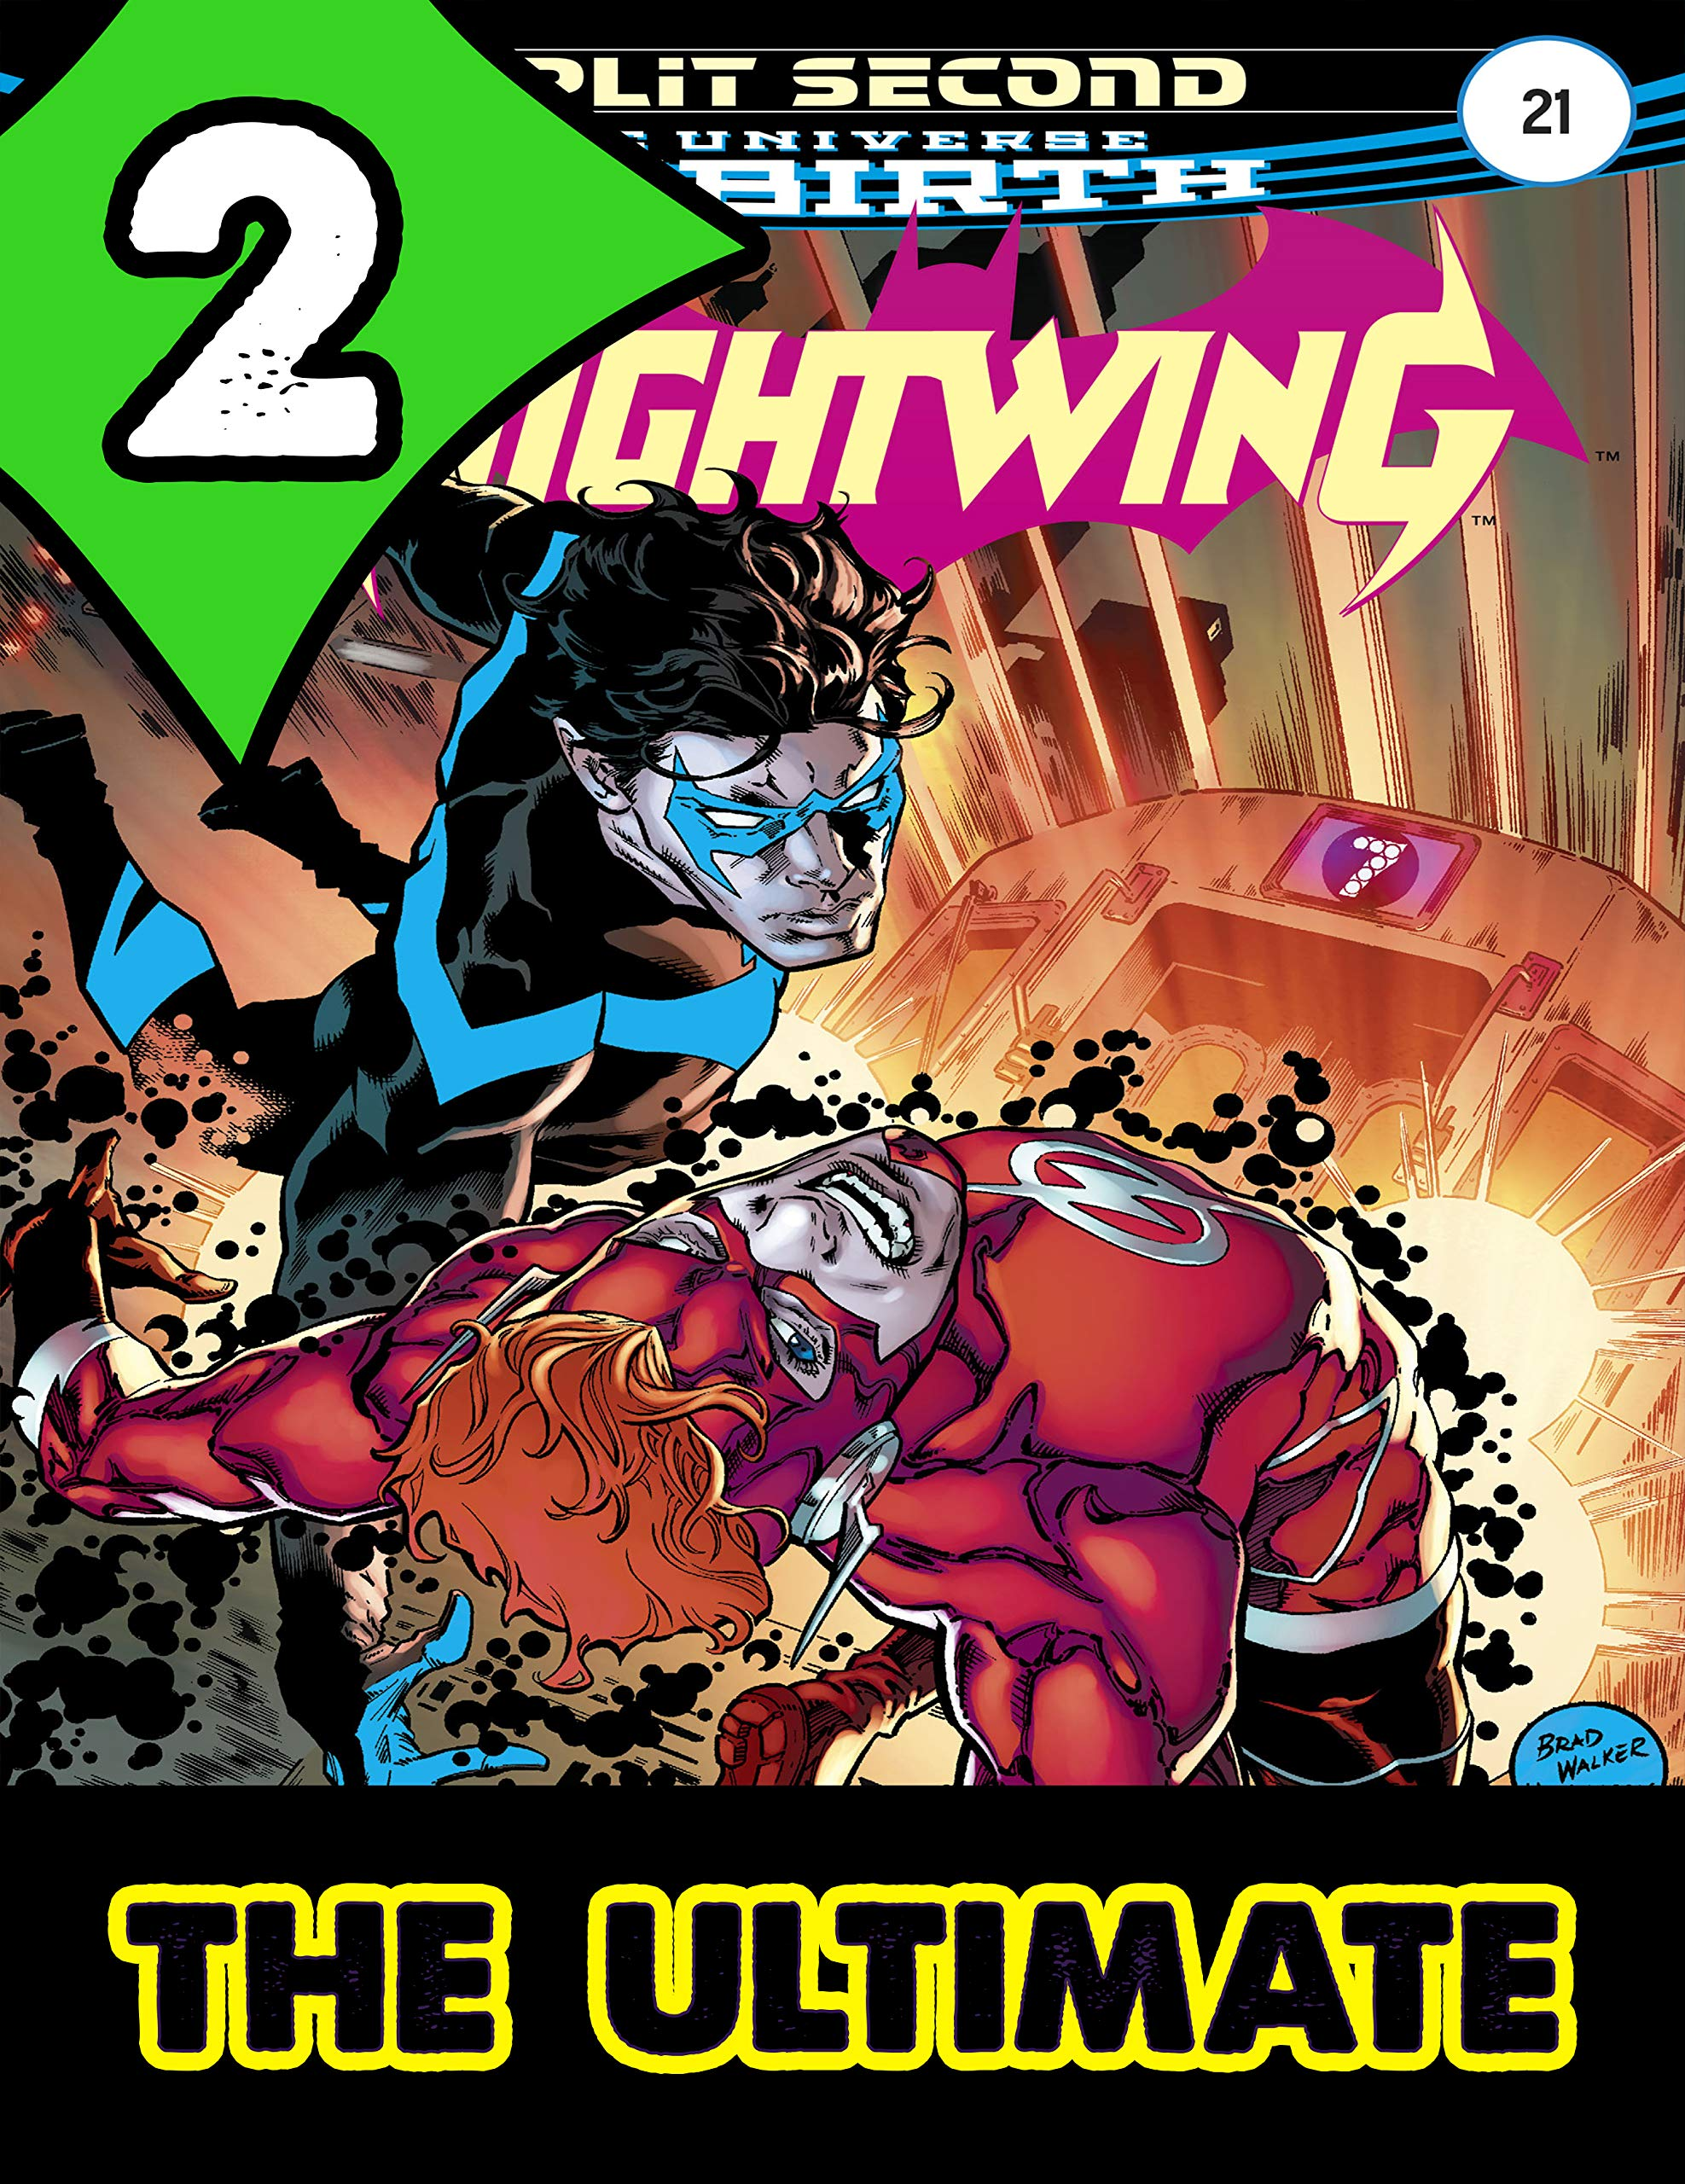 The Ultimate Heroes Nightwing Collections: Comics Graphic Novels Nightwing Pack 3